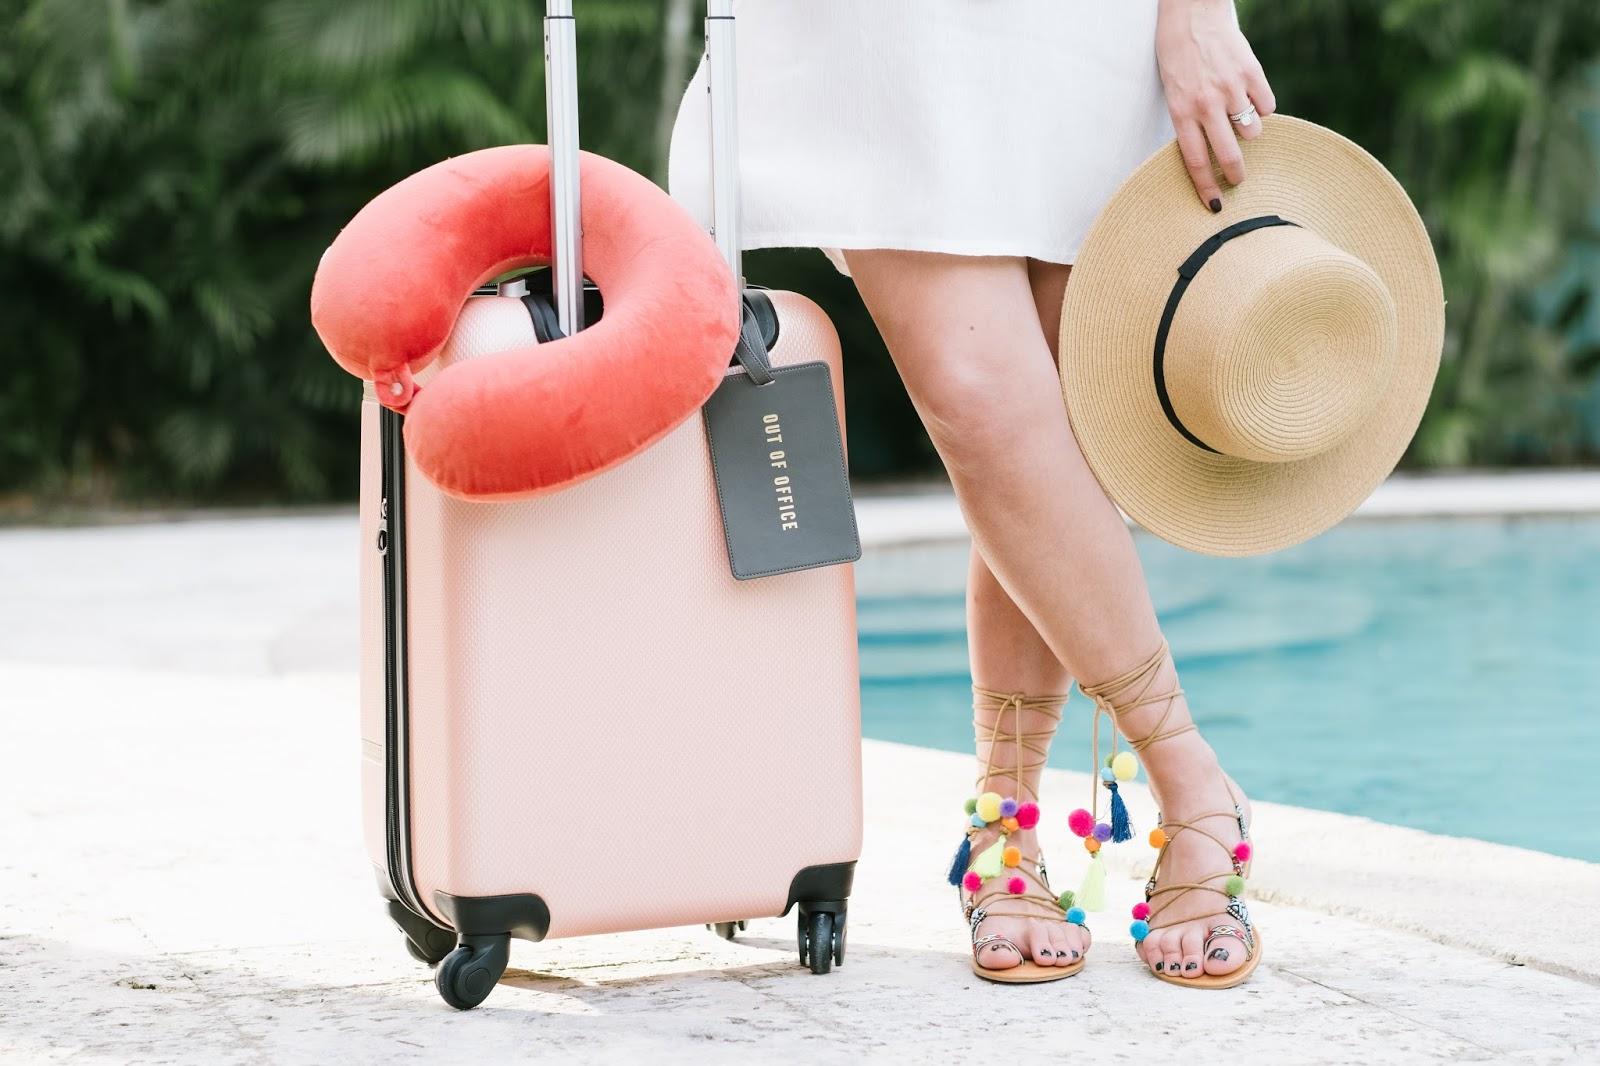 Packing tips for a tropical getaway with Samsonite luggage